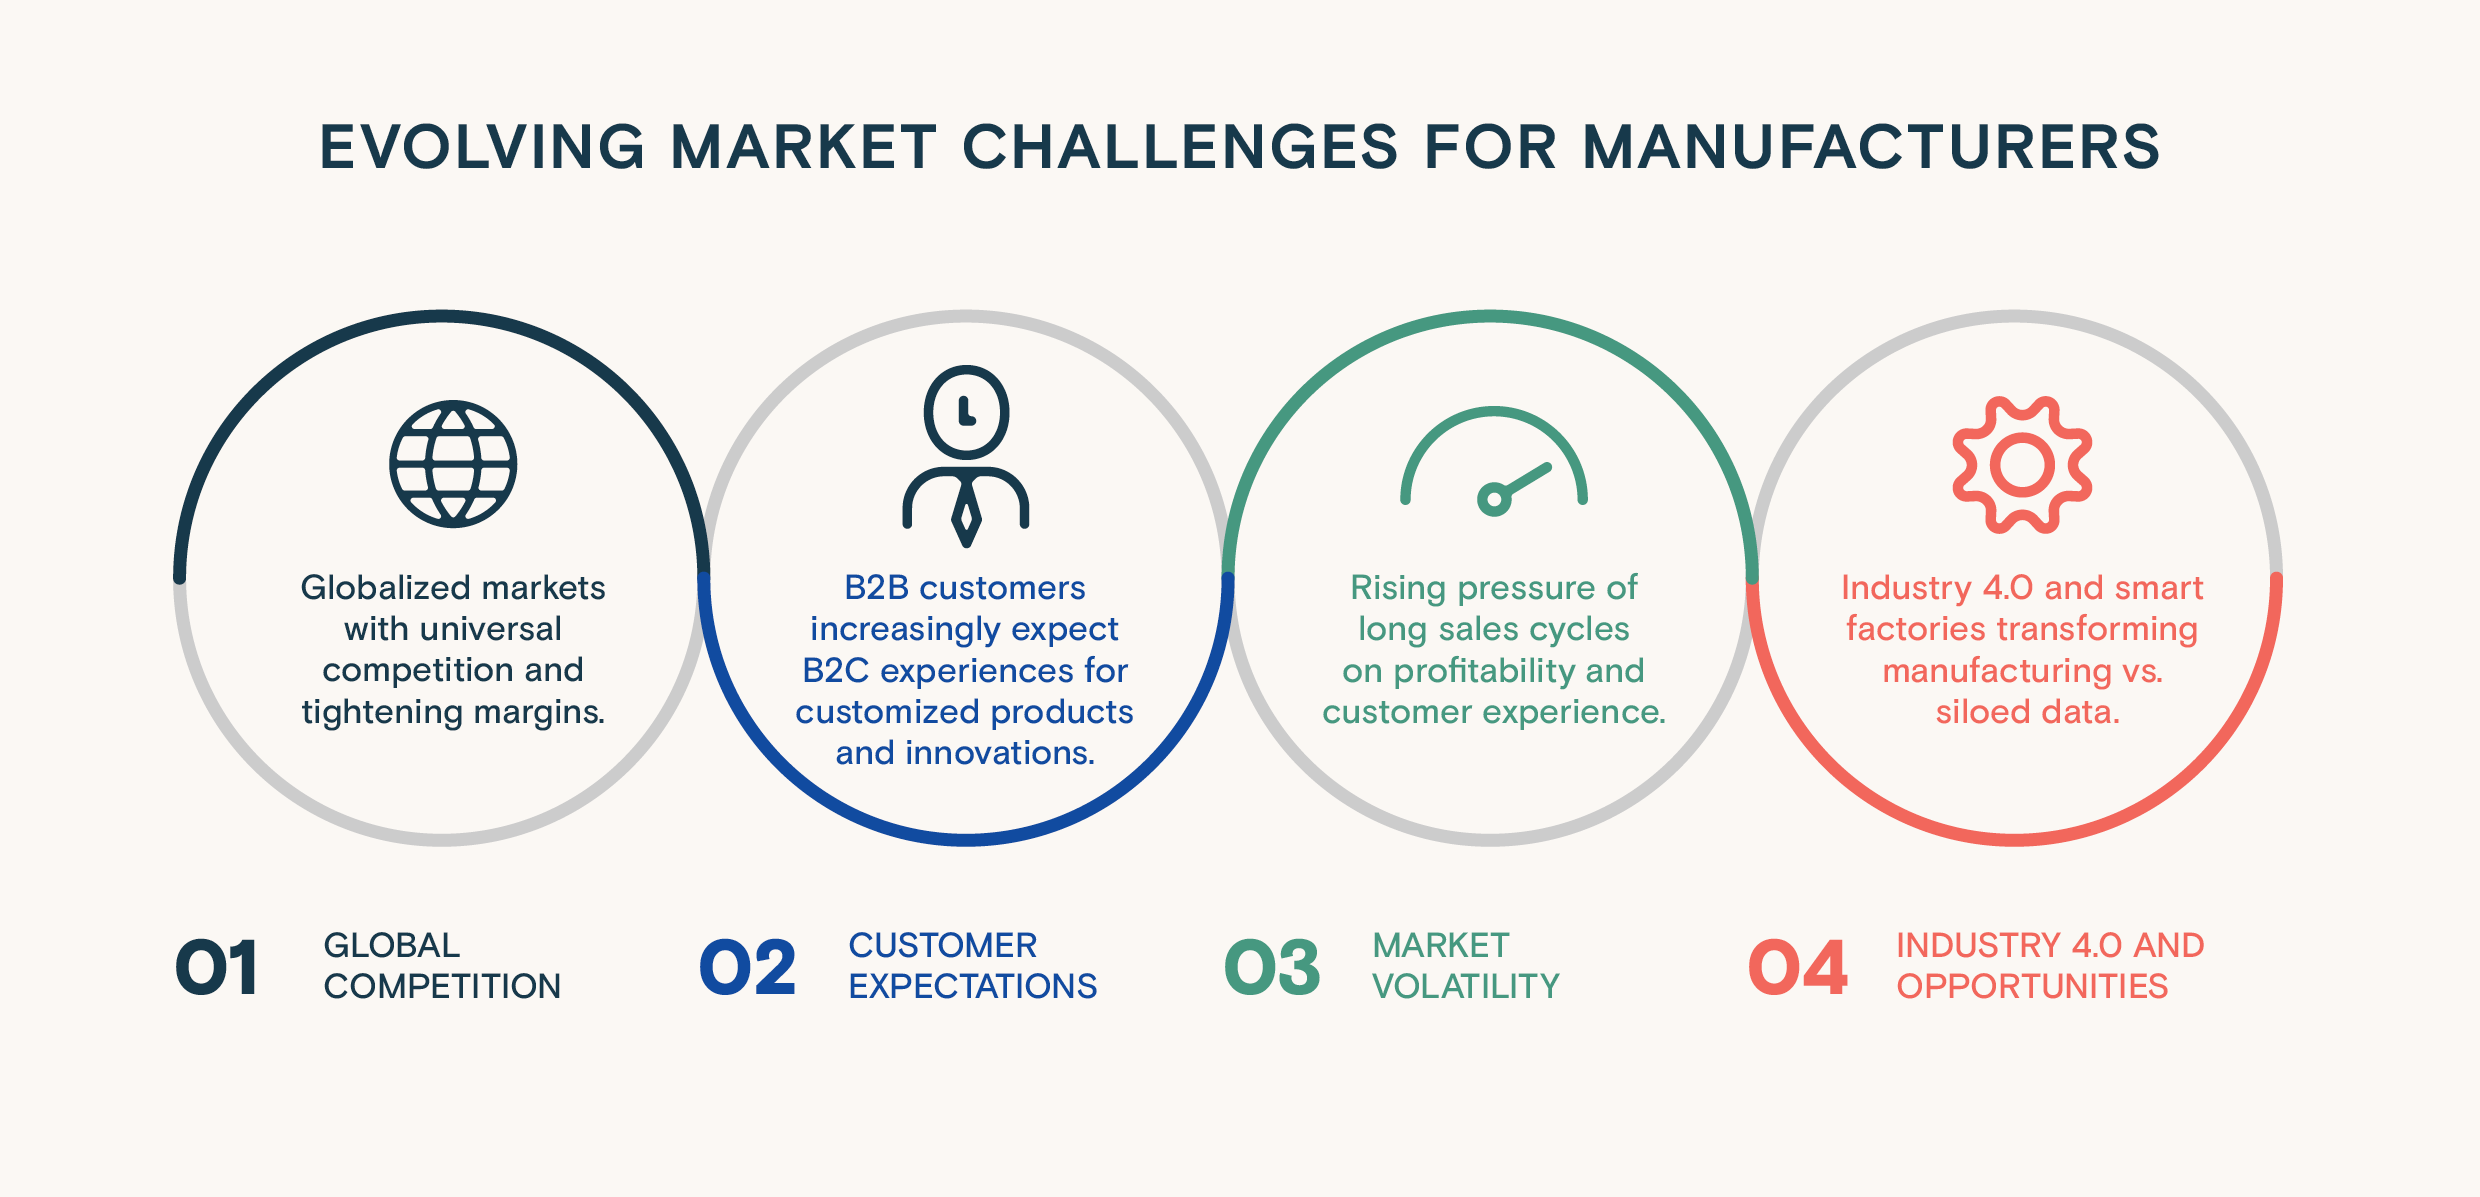 Evolving market challenges for manufacturers in 2021